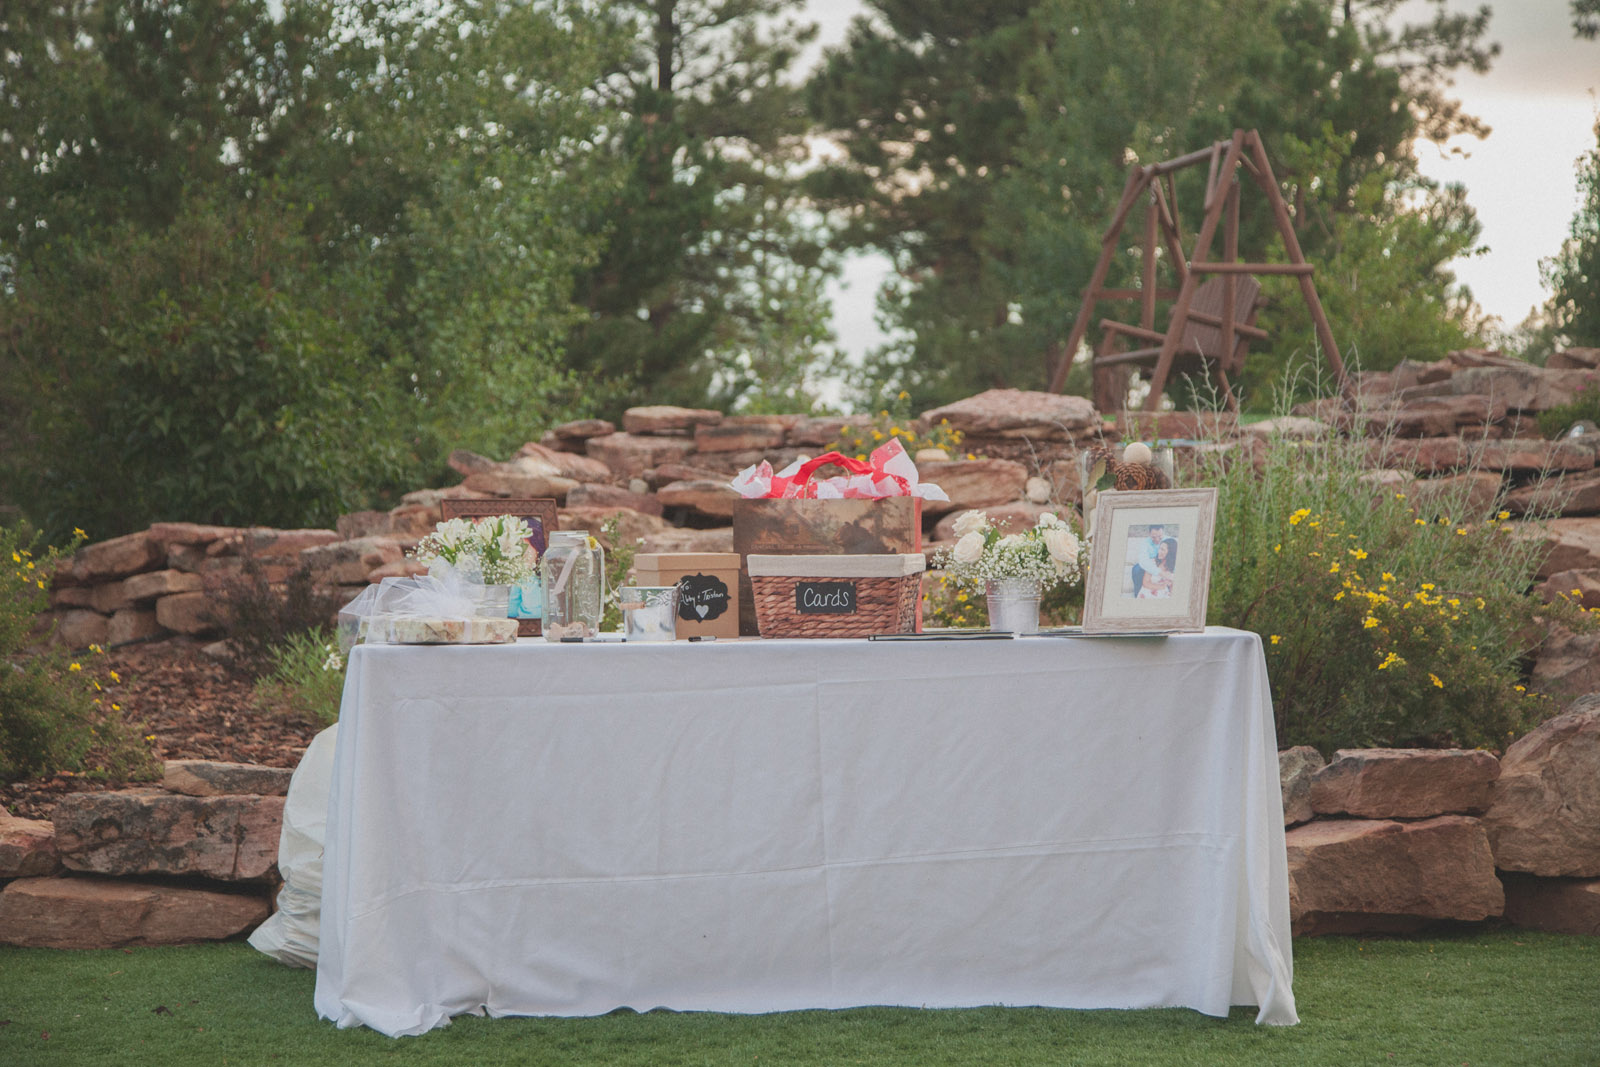 172-reception-ideas-reception-farmington-nm-co-new-mexico-colorado-mancos-ideas-string-lights-cabin-outside-natural-wedding